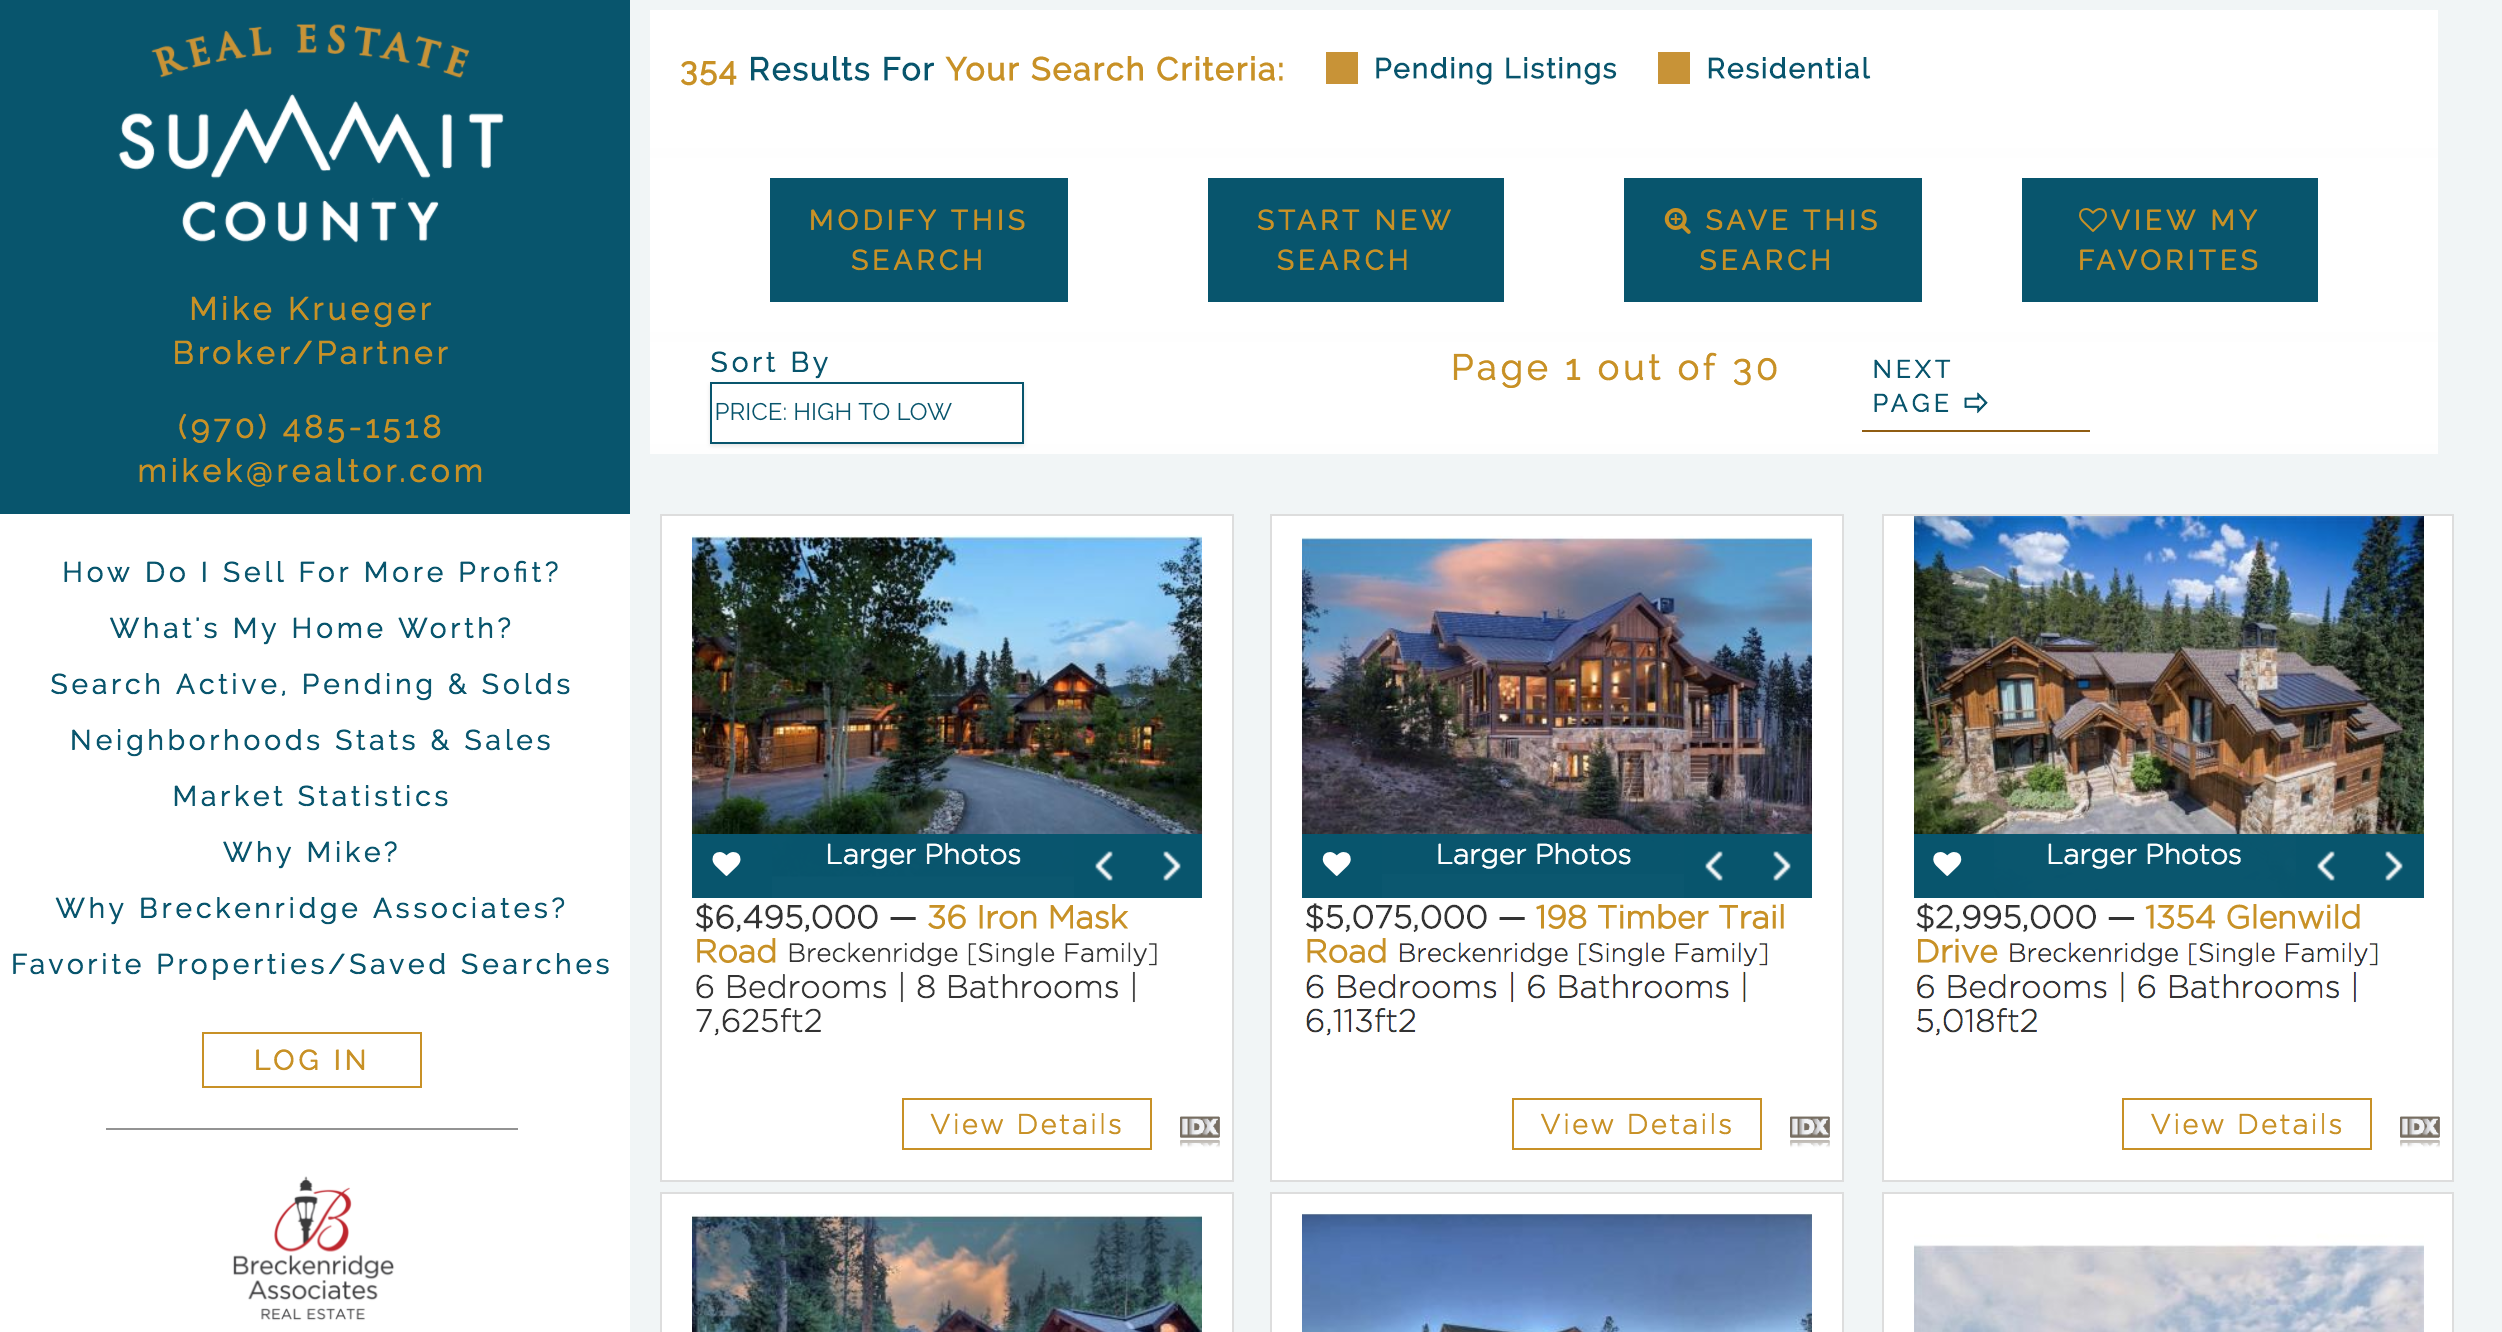 a screenshot of the results page at Real Estate Summit County